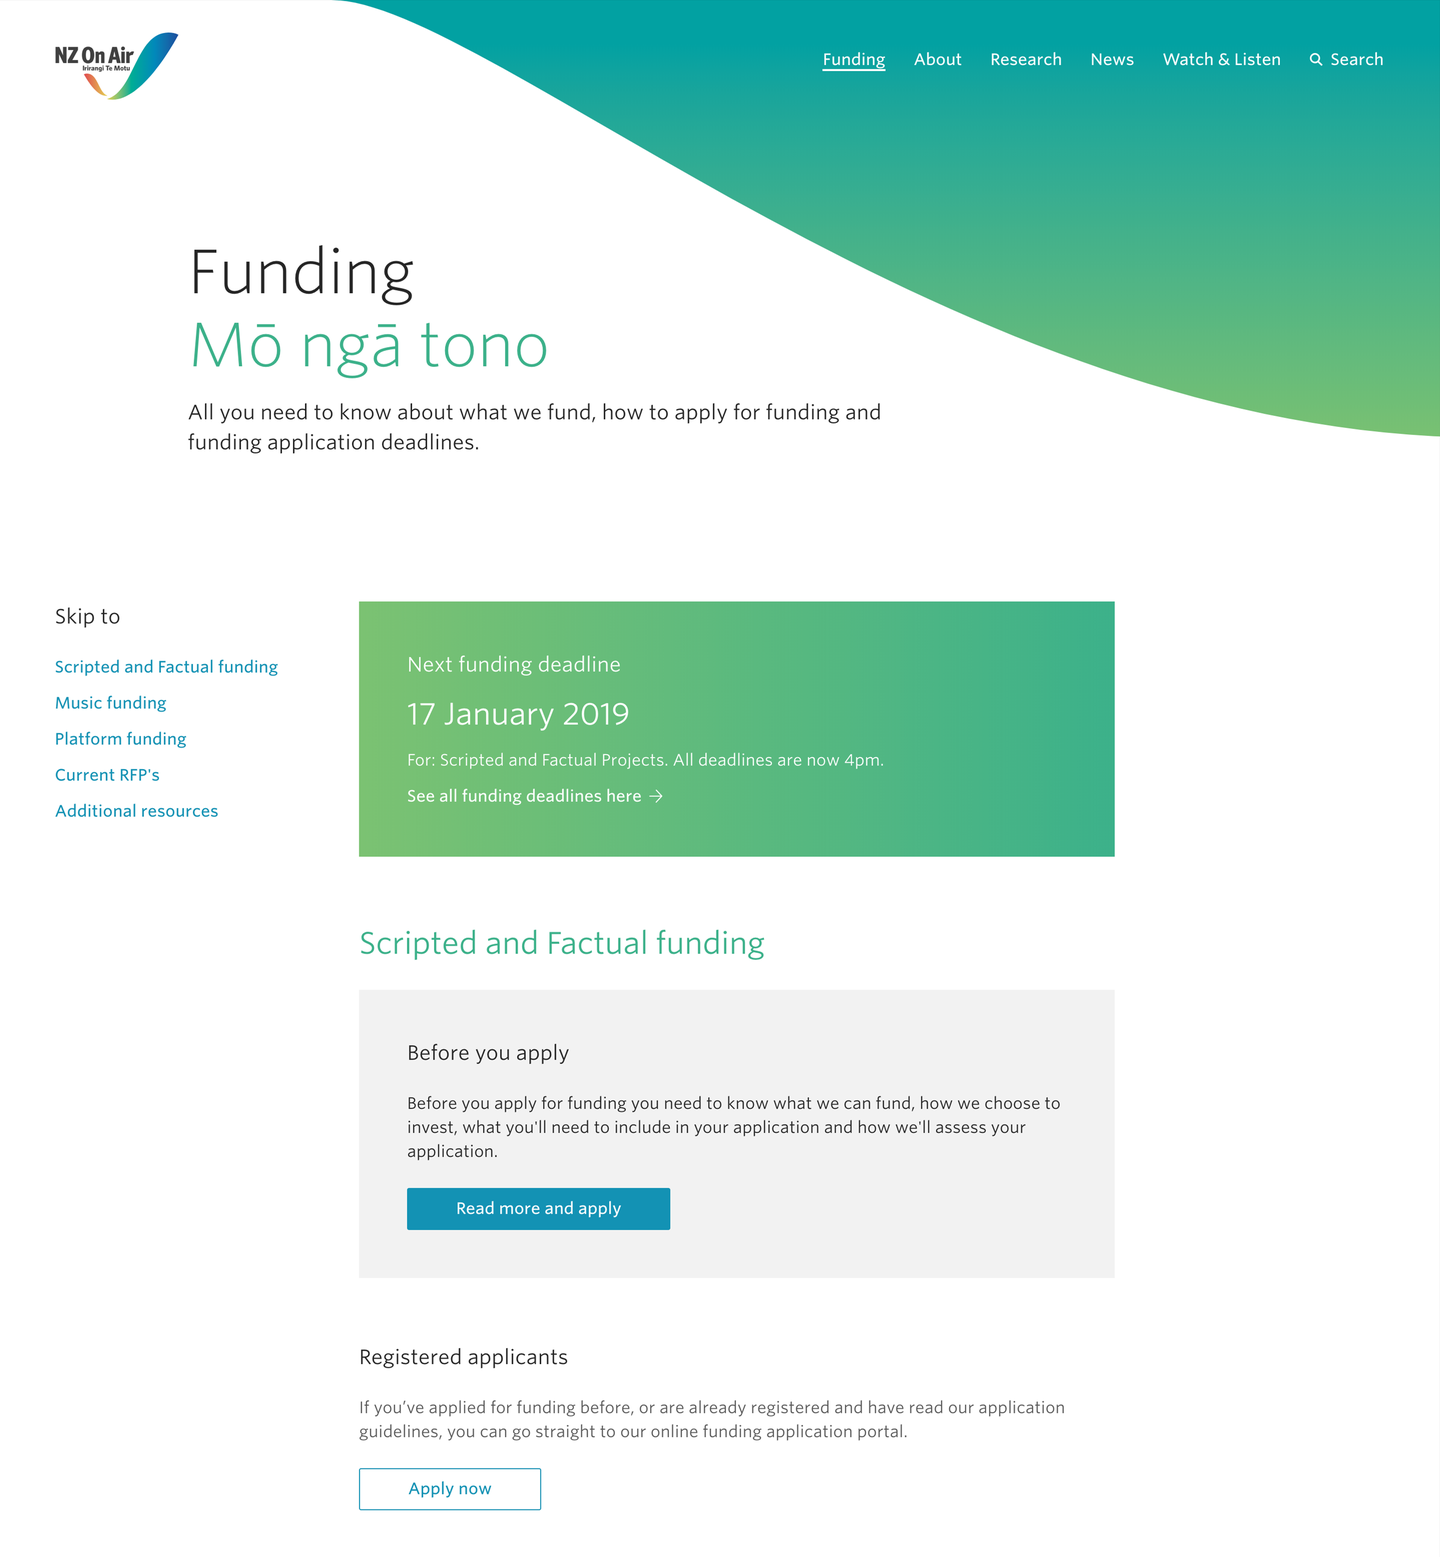 Desktop screenshot of the Funding page